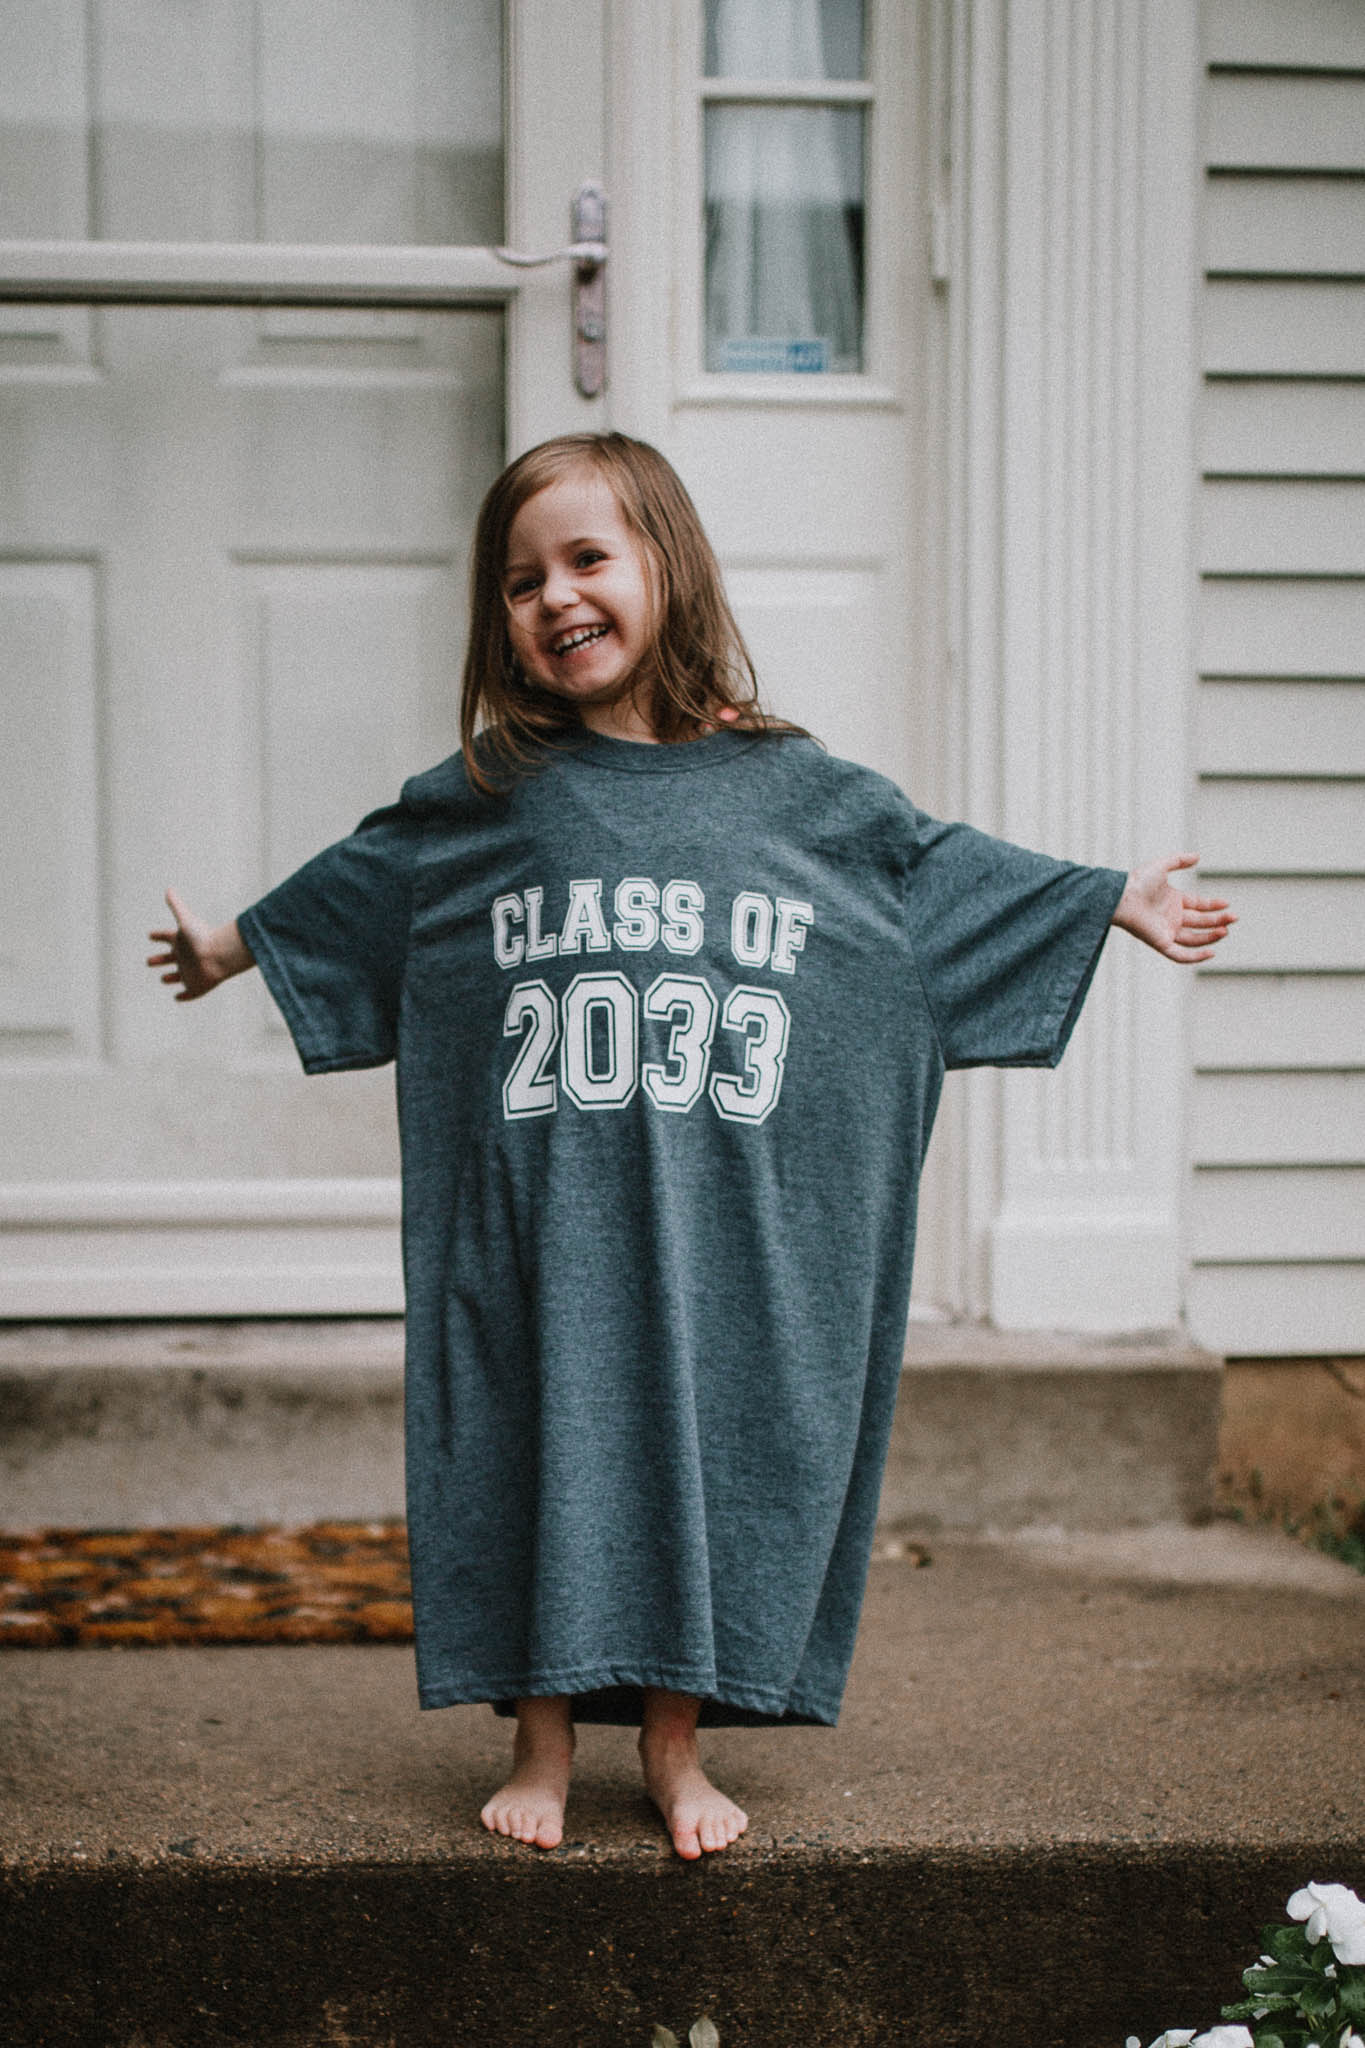 Class of 2033 shirt preschool Toddler Girl Ashburn Virginia Lifestyle Documentary Family Marti Austin Photography